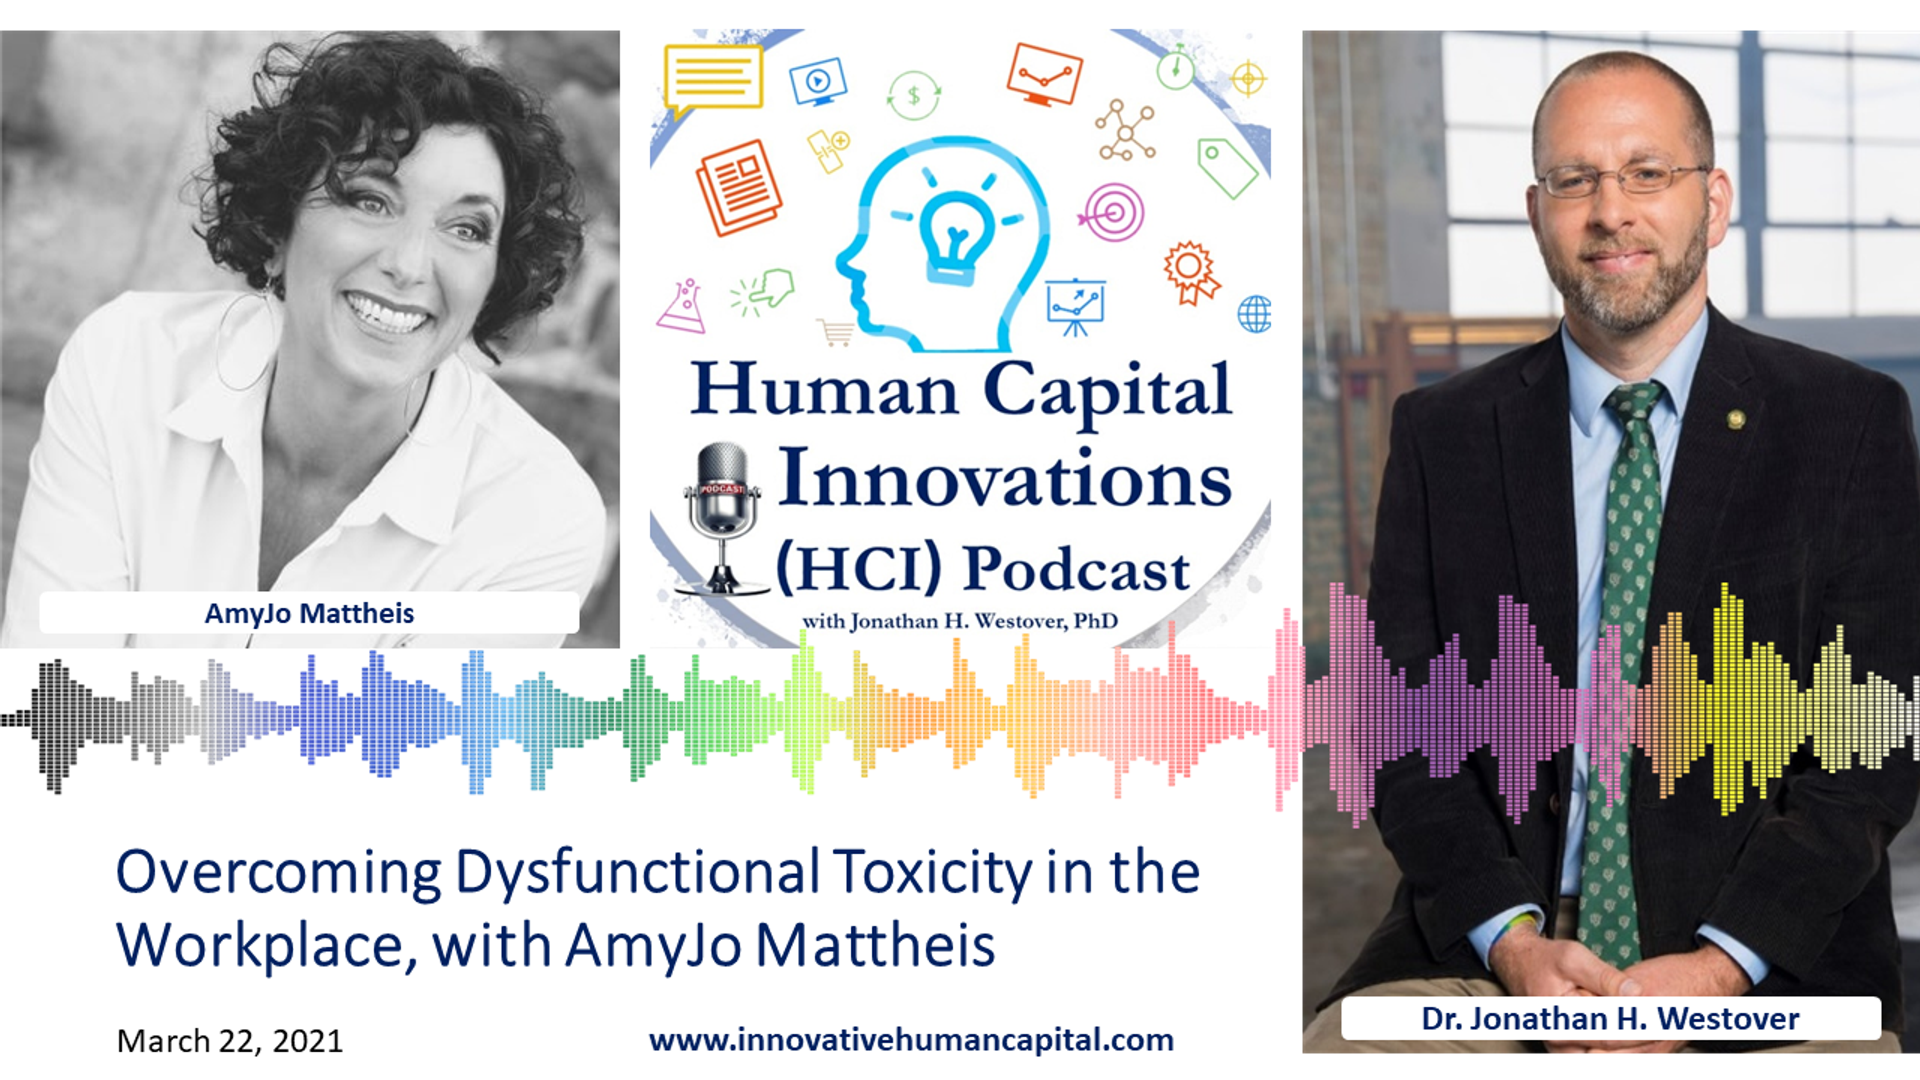 Overcoming Dysfunctional Toxicity in the Workplace